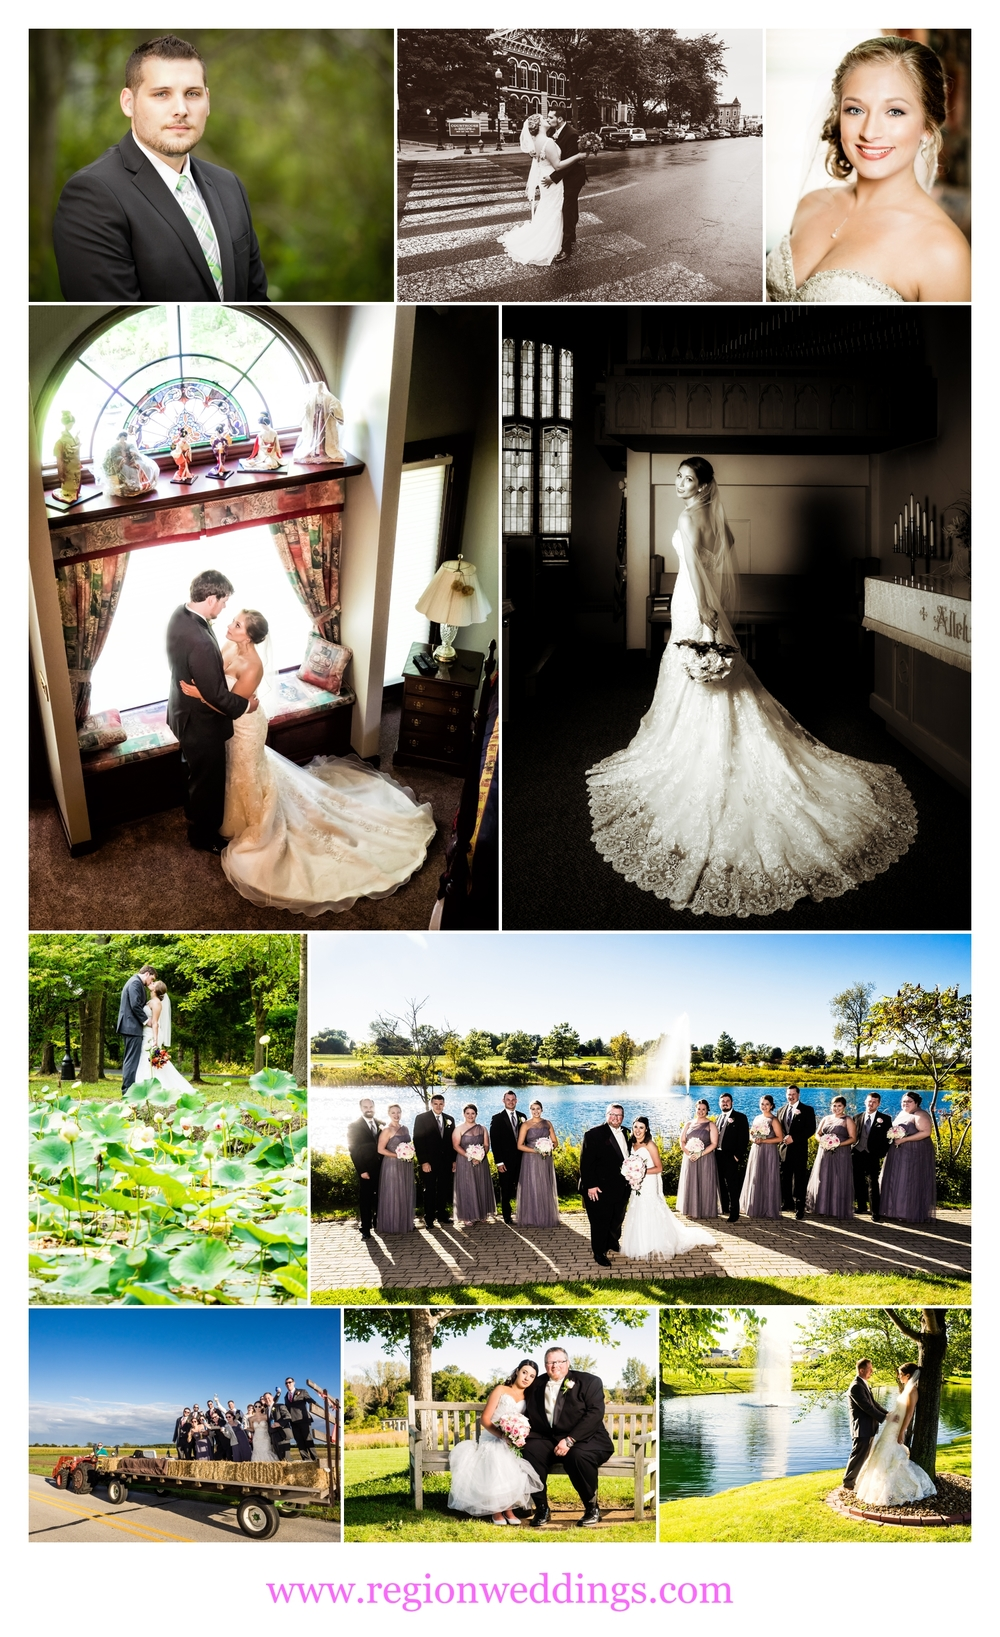 northwest-indiana-wedding-photography-collage8.jpg